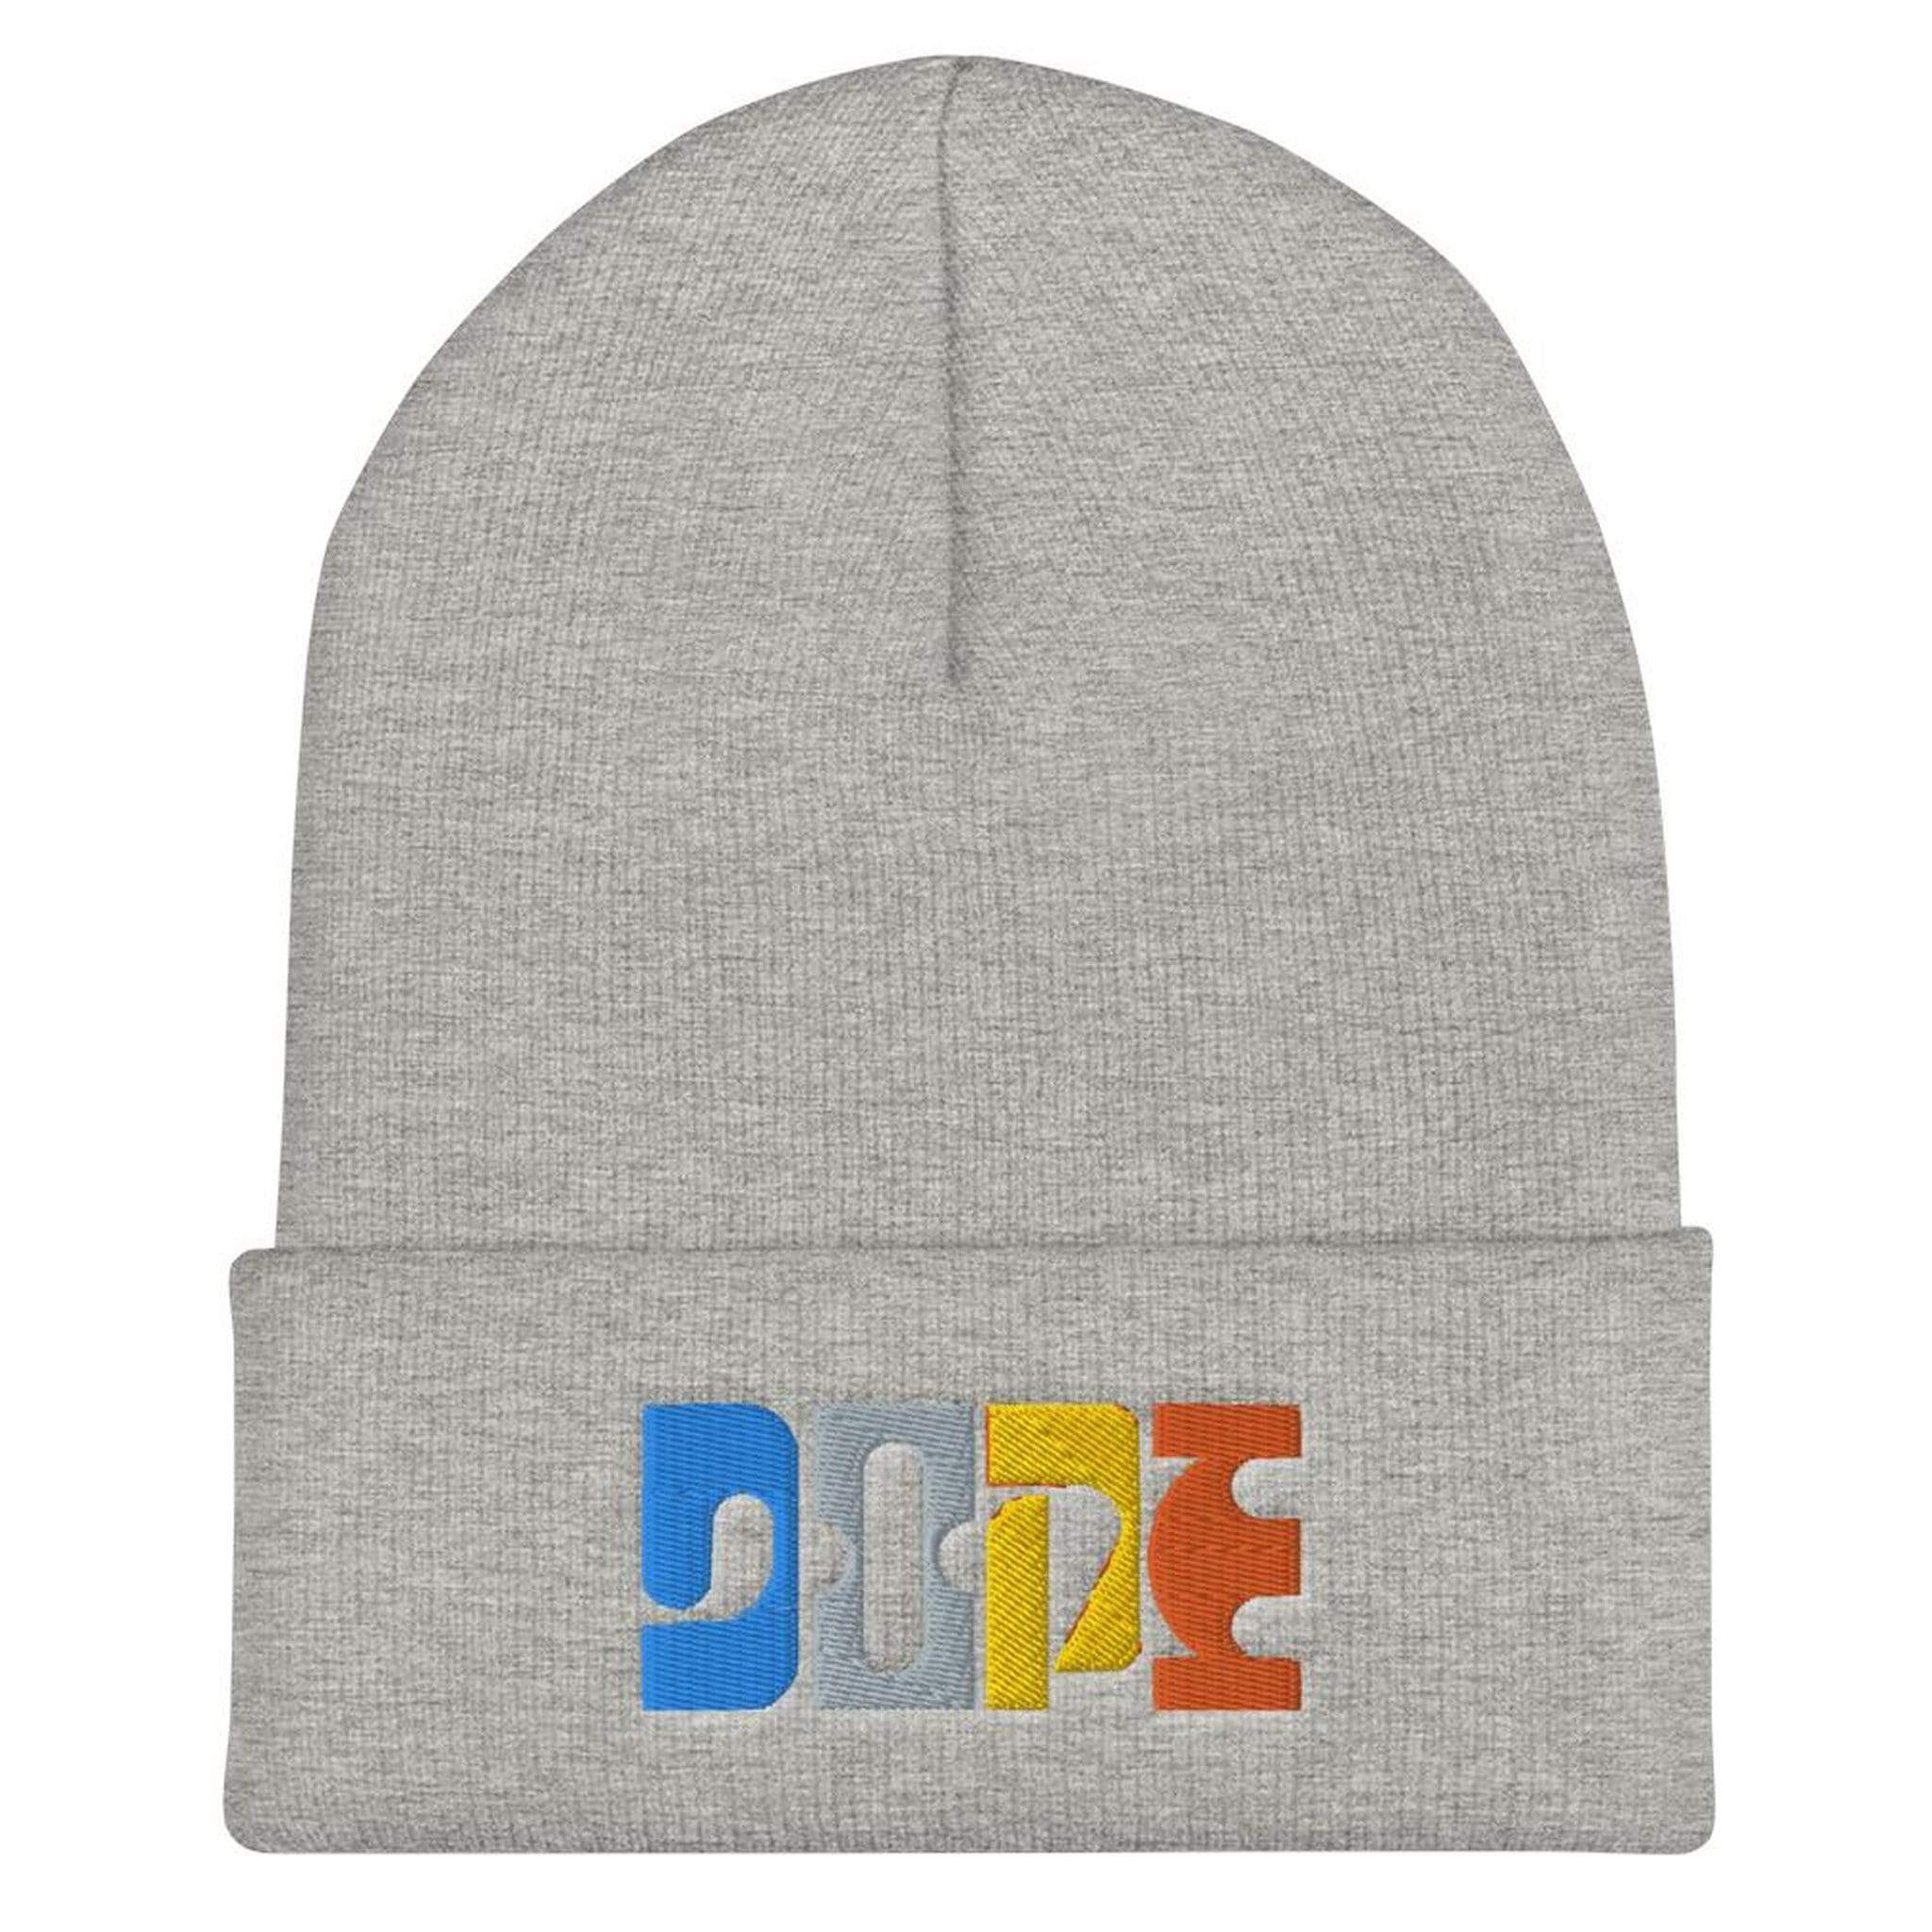 Dope | Cool Colorful Typography Graphic Embroidered Cuffed Beanie - Heather Grey